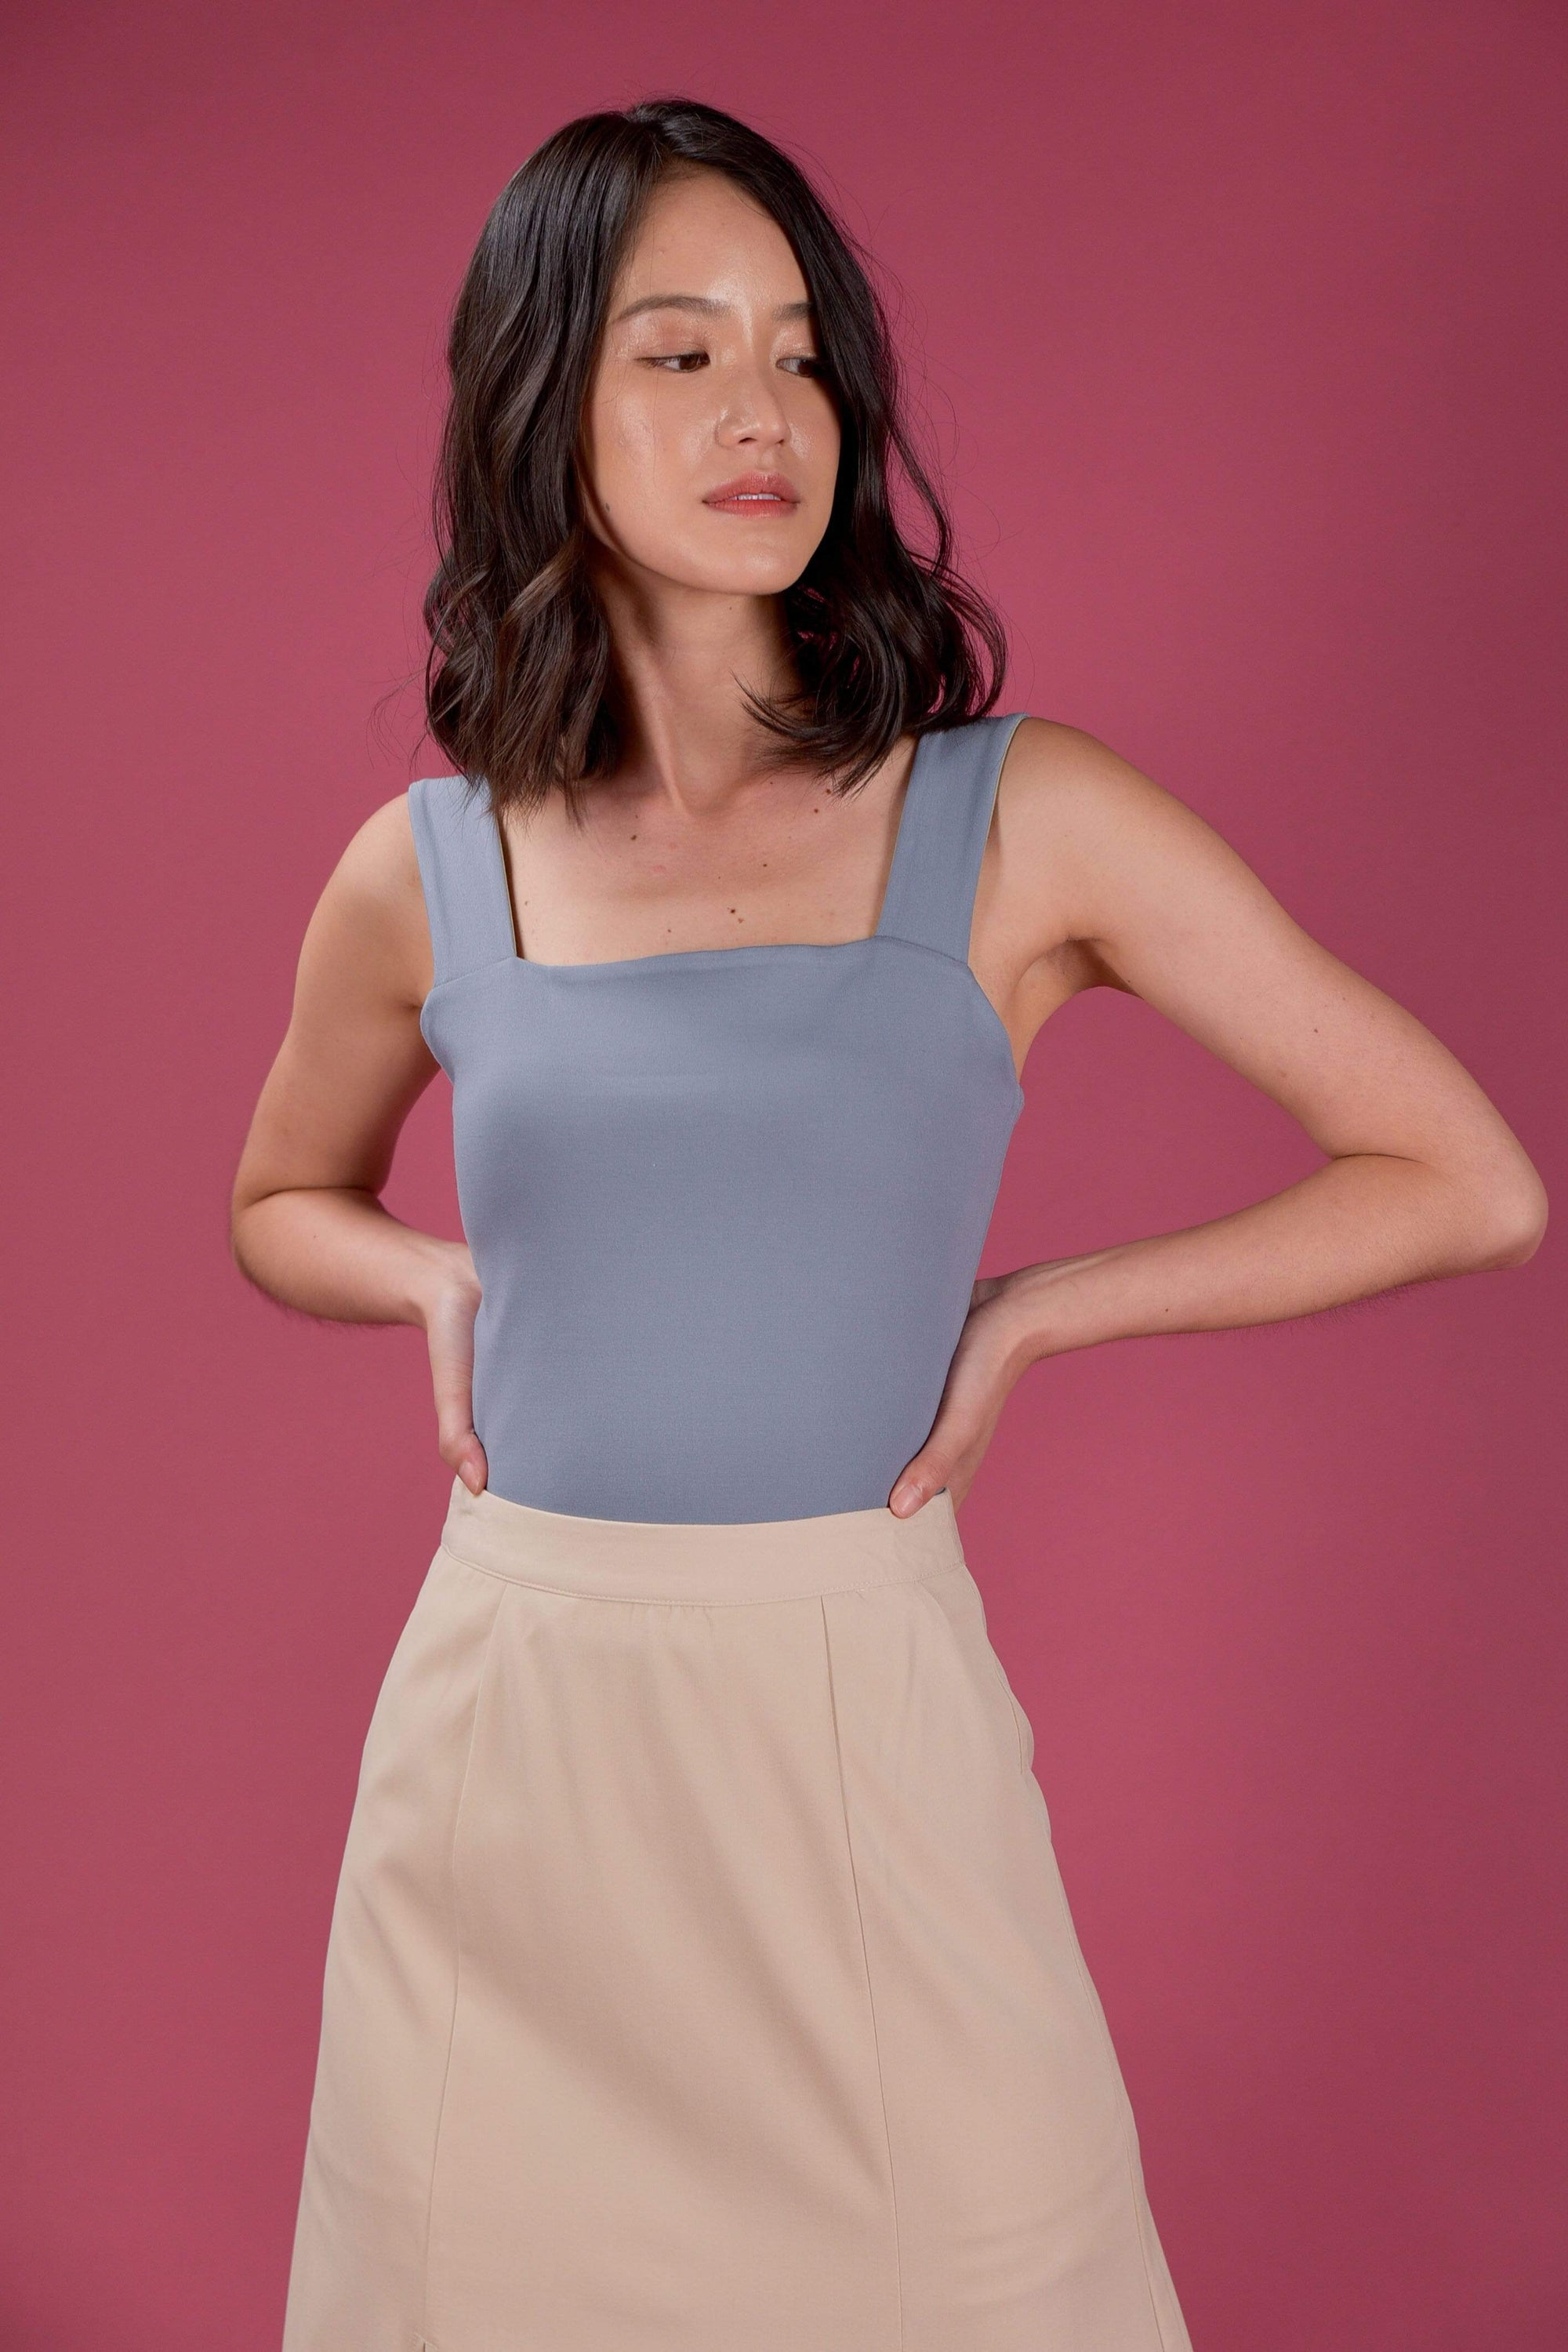 EVERYDAY REVERSIBLE TOP IN SAGE/BLUE (L/XL)